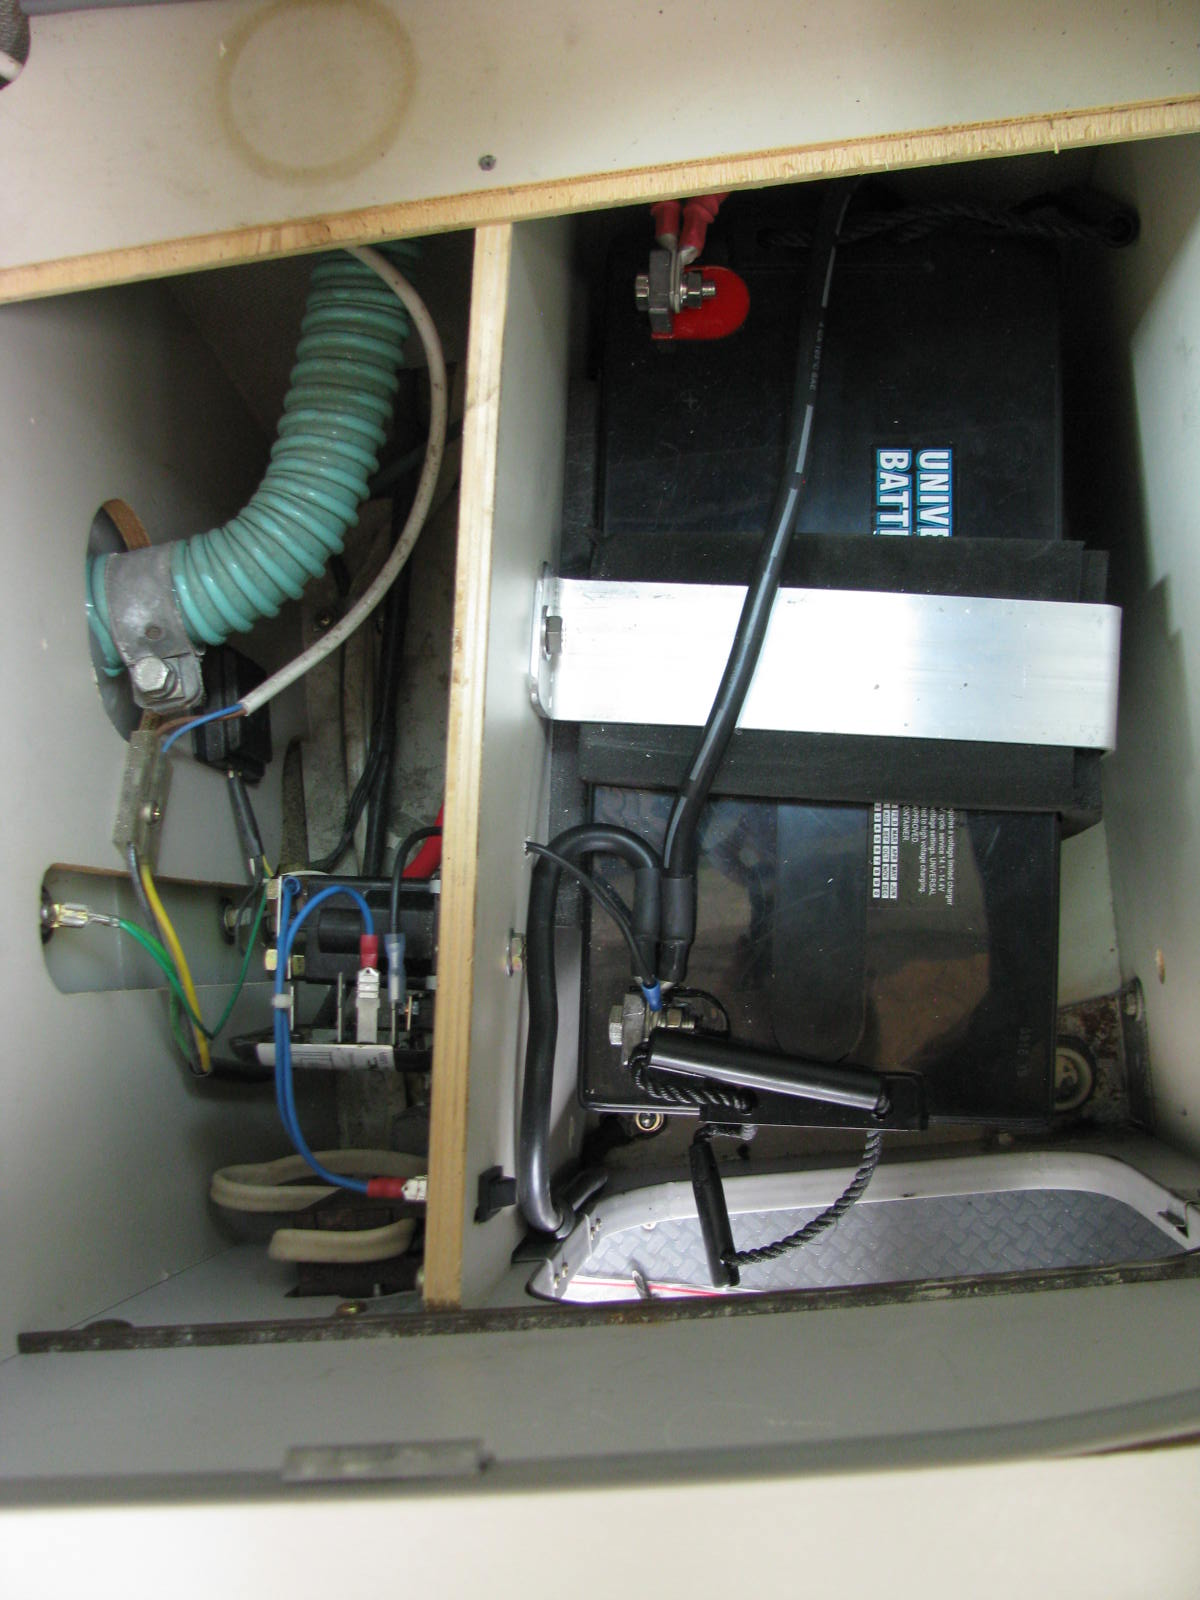 Westy Ventures Parts Vanagon Subaru Conversion Wiring Diagrams Another Tf49 Where I Fabricated A New Front Panel This One Has Xantrex 1000 Watt Inverter 20a Smart Charger Beneath The Fridge